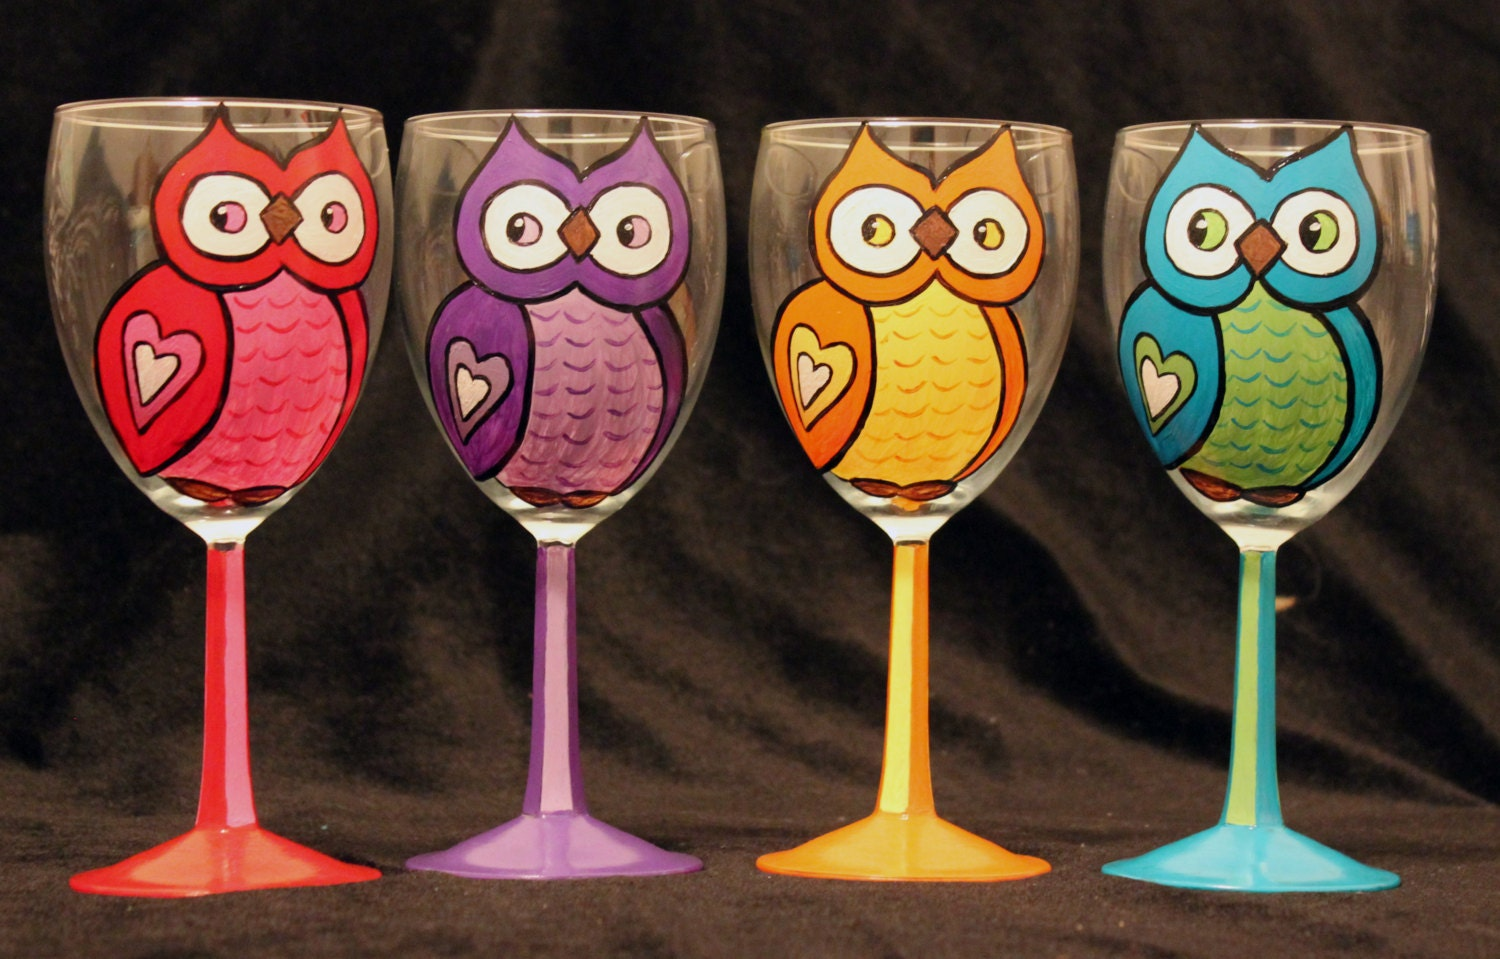 Hand painted wine glasses Images of painted wine glasses